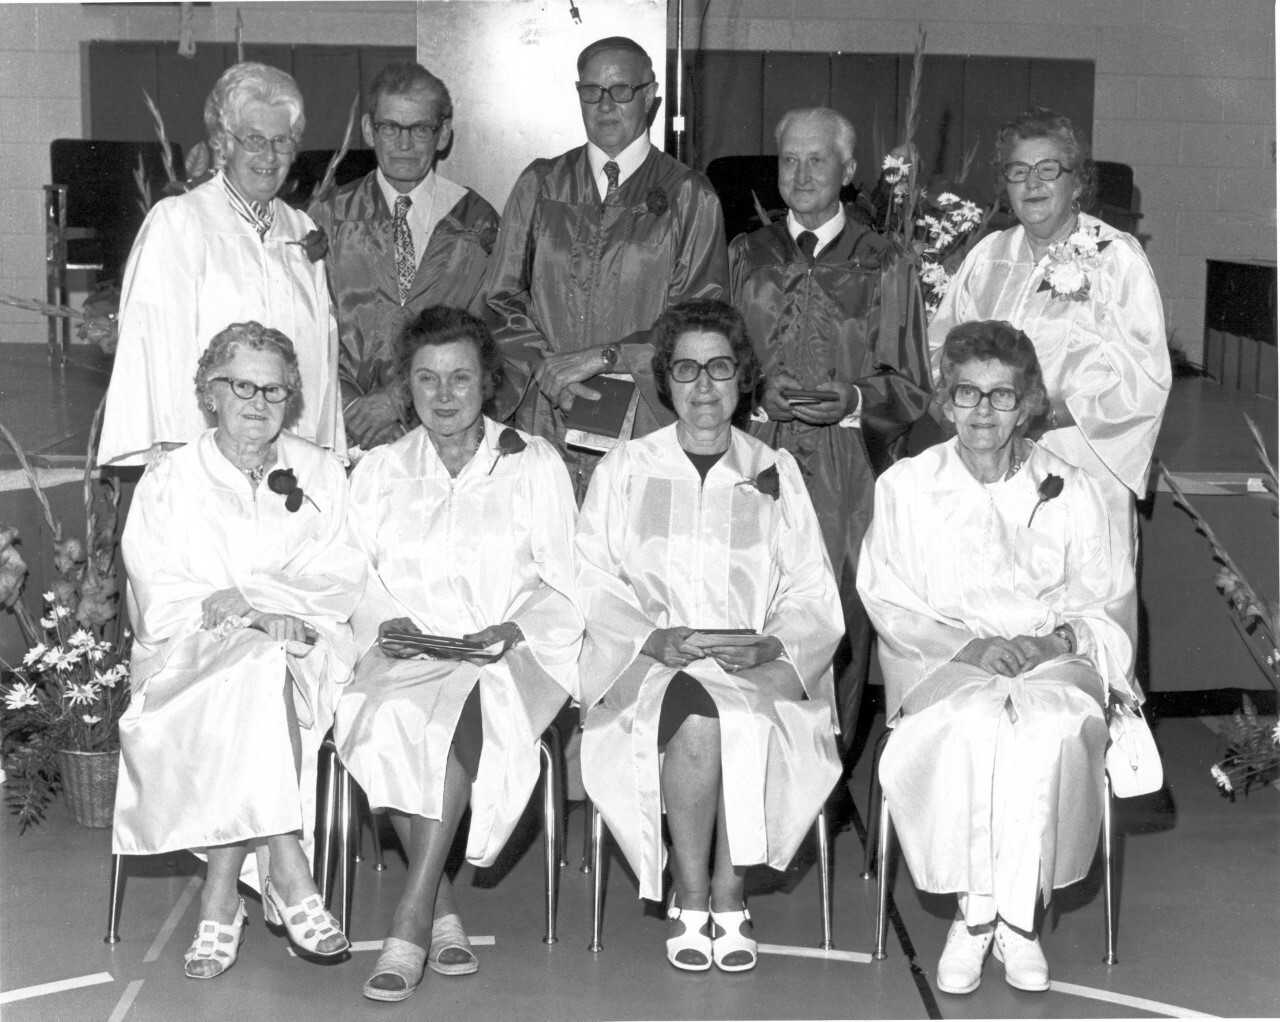 The graduating class of 1927 didn't get their diplomas because of the bombing. They were presented their diplomas in 1977, along with the Bath High School Class of 1977.